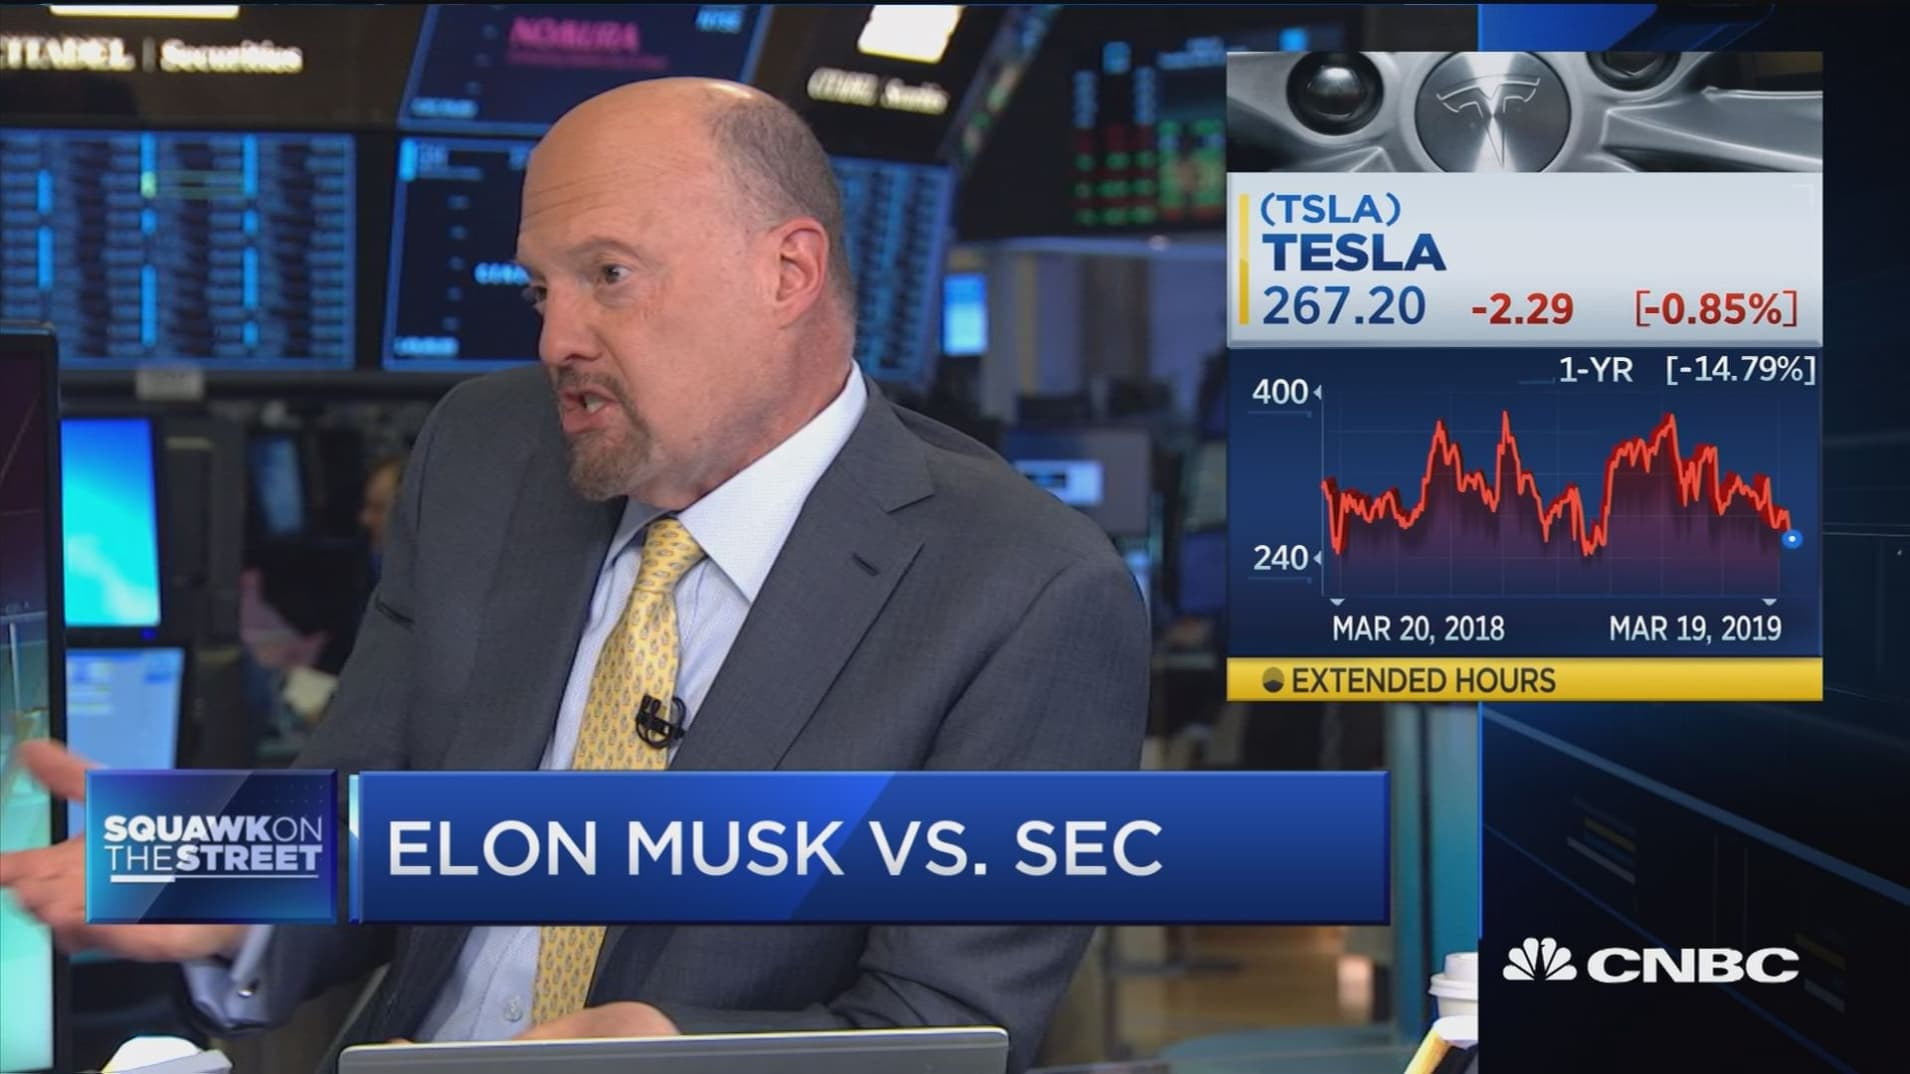 Cramer: Musk has 'made a fool' of the judge overseeing SEC settlement case